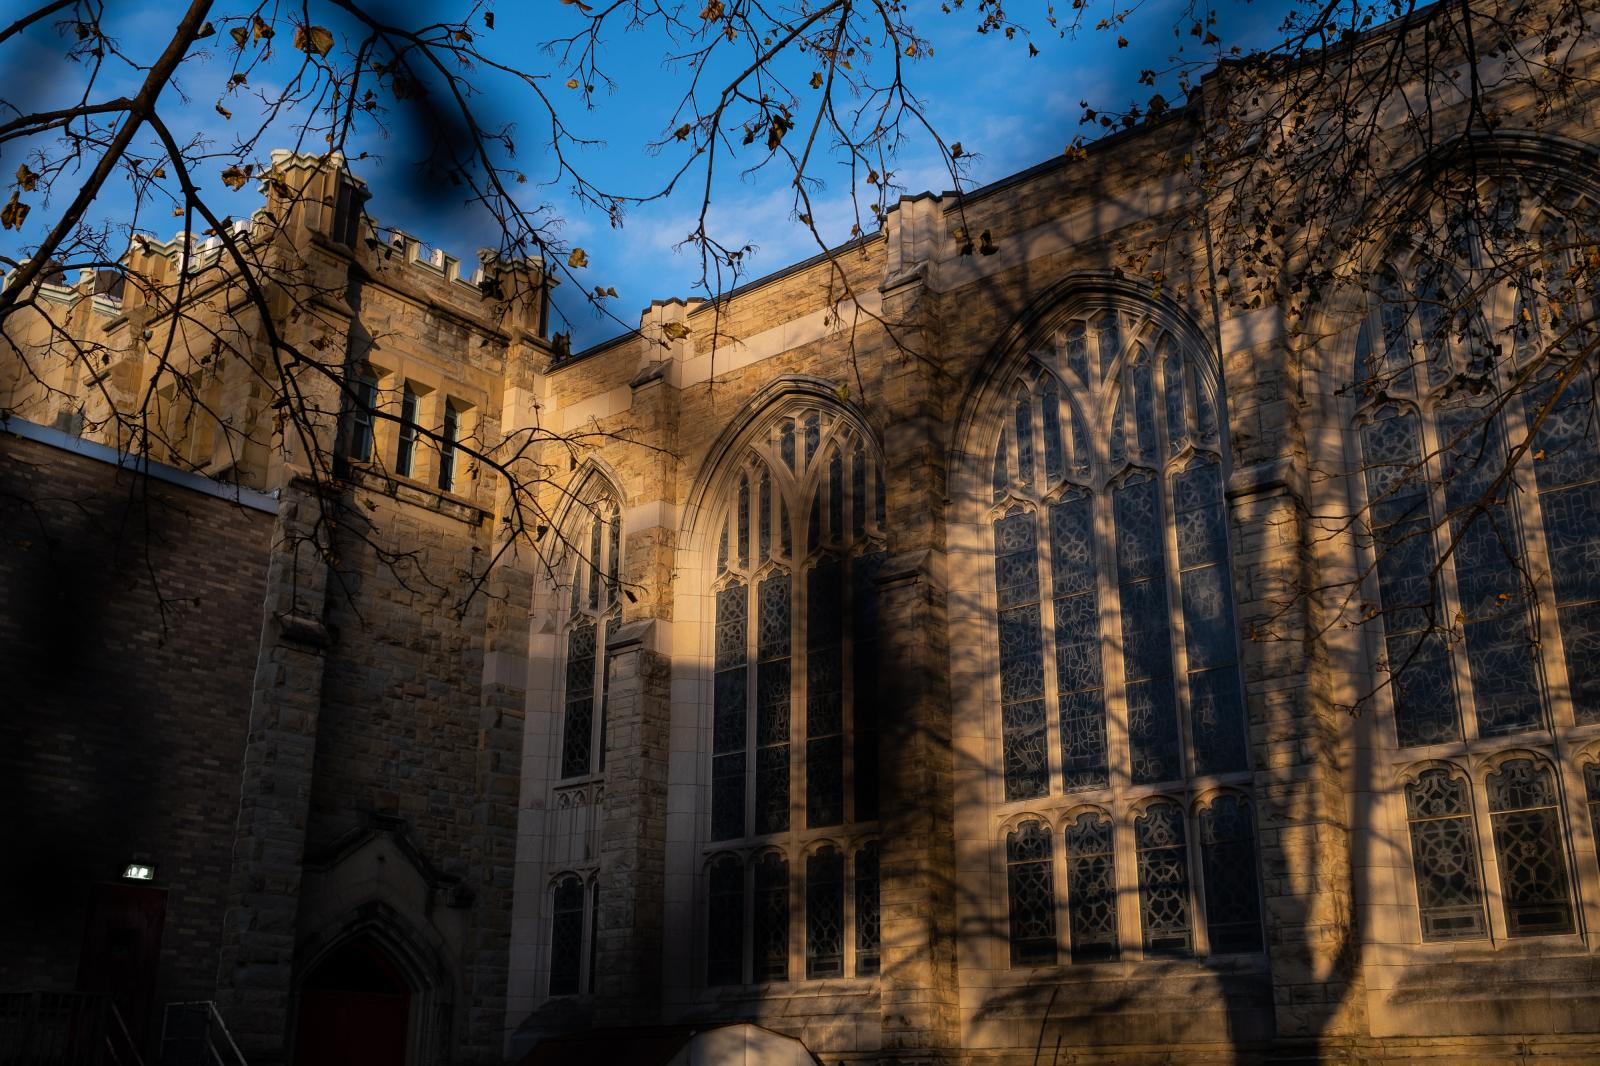 Exterior of the University United Methodist Church during golden hour.